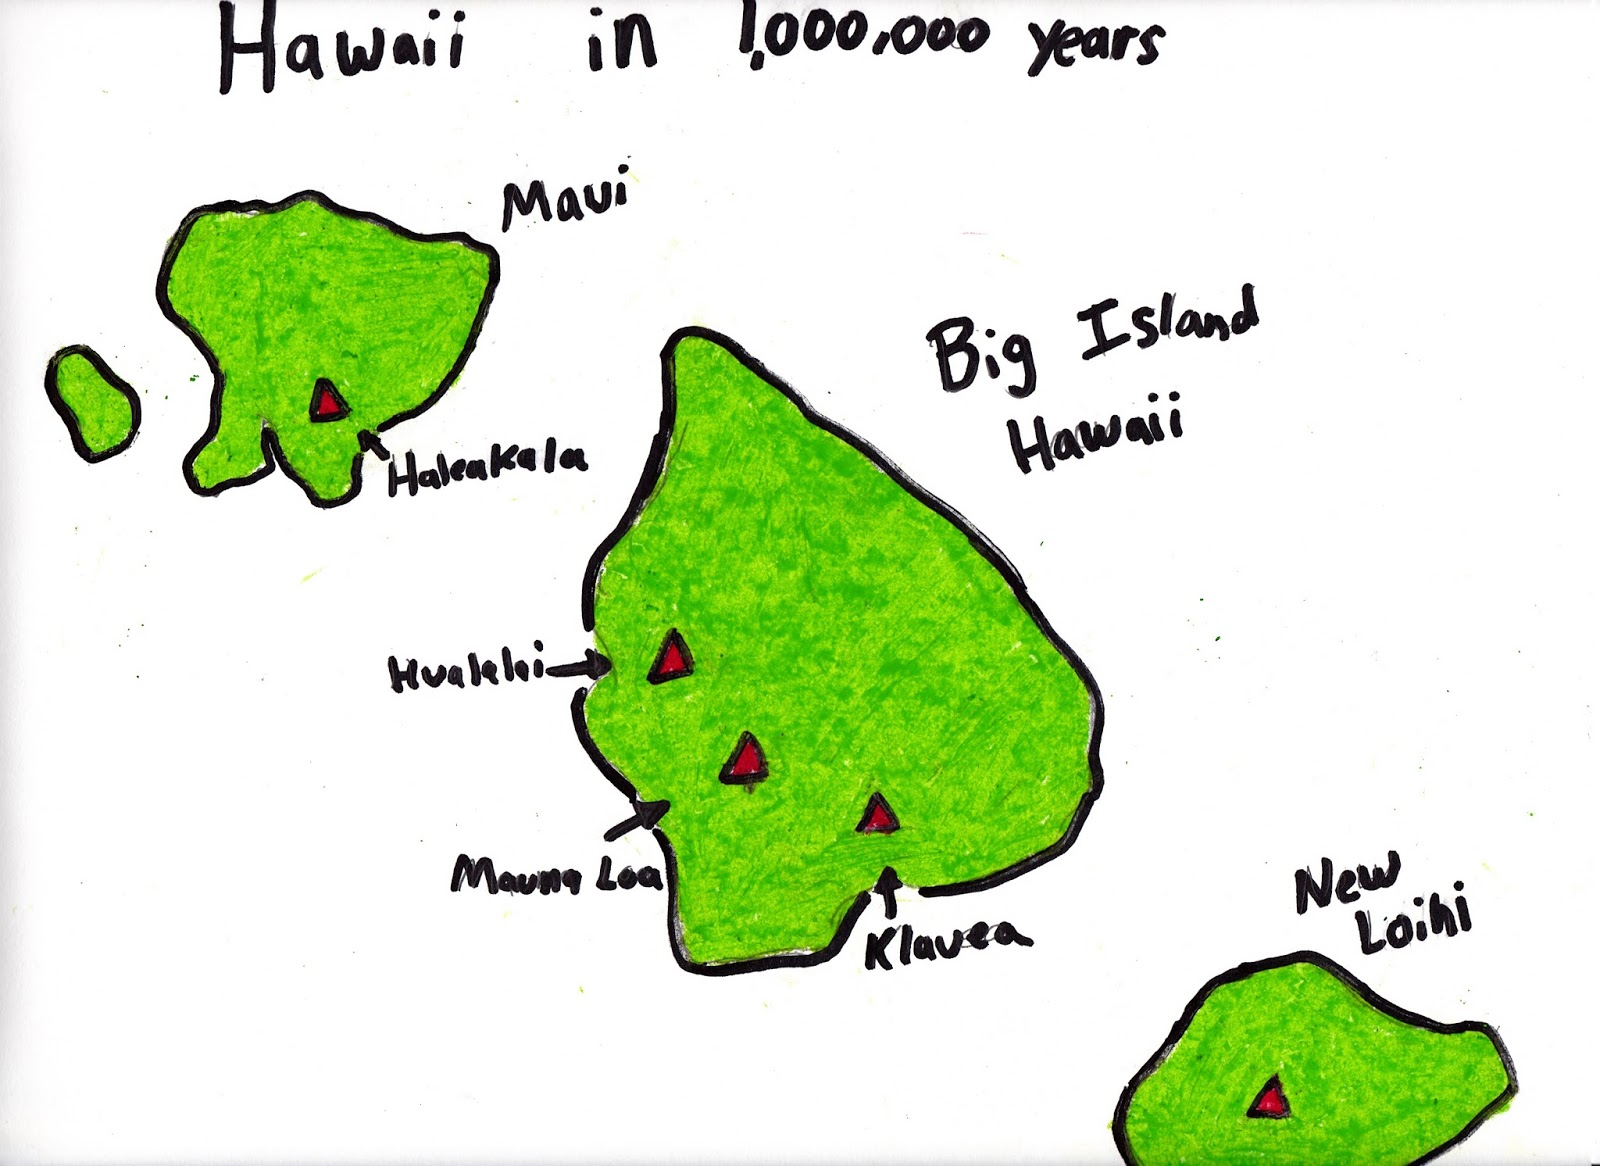 The Great State of Hawaii